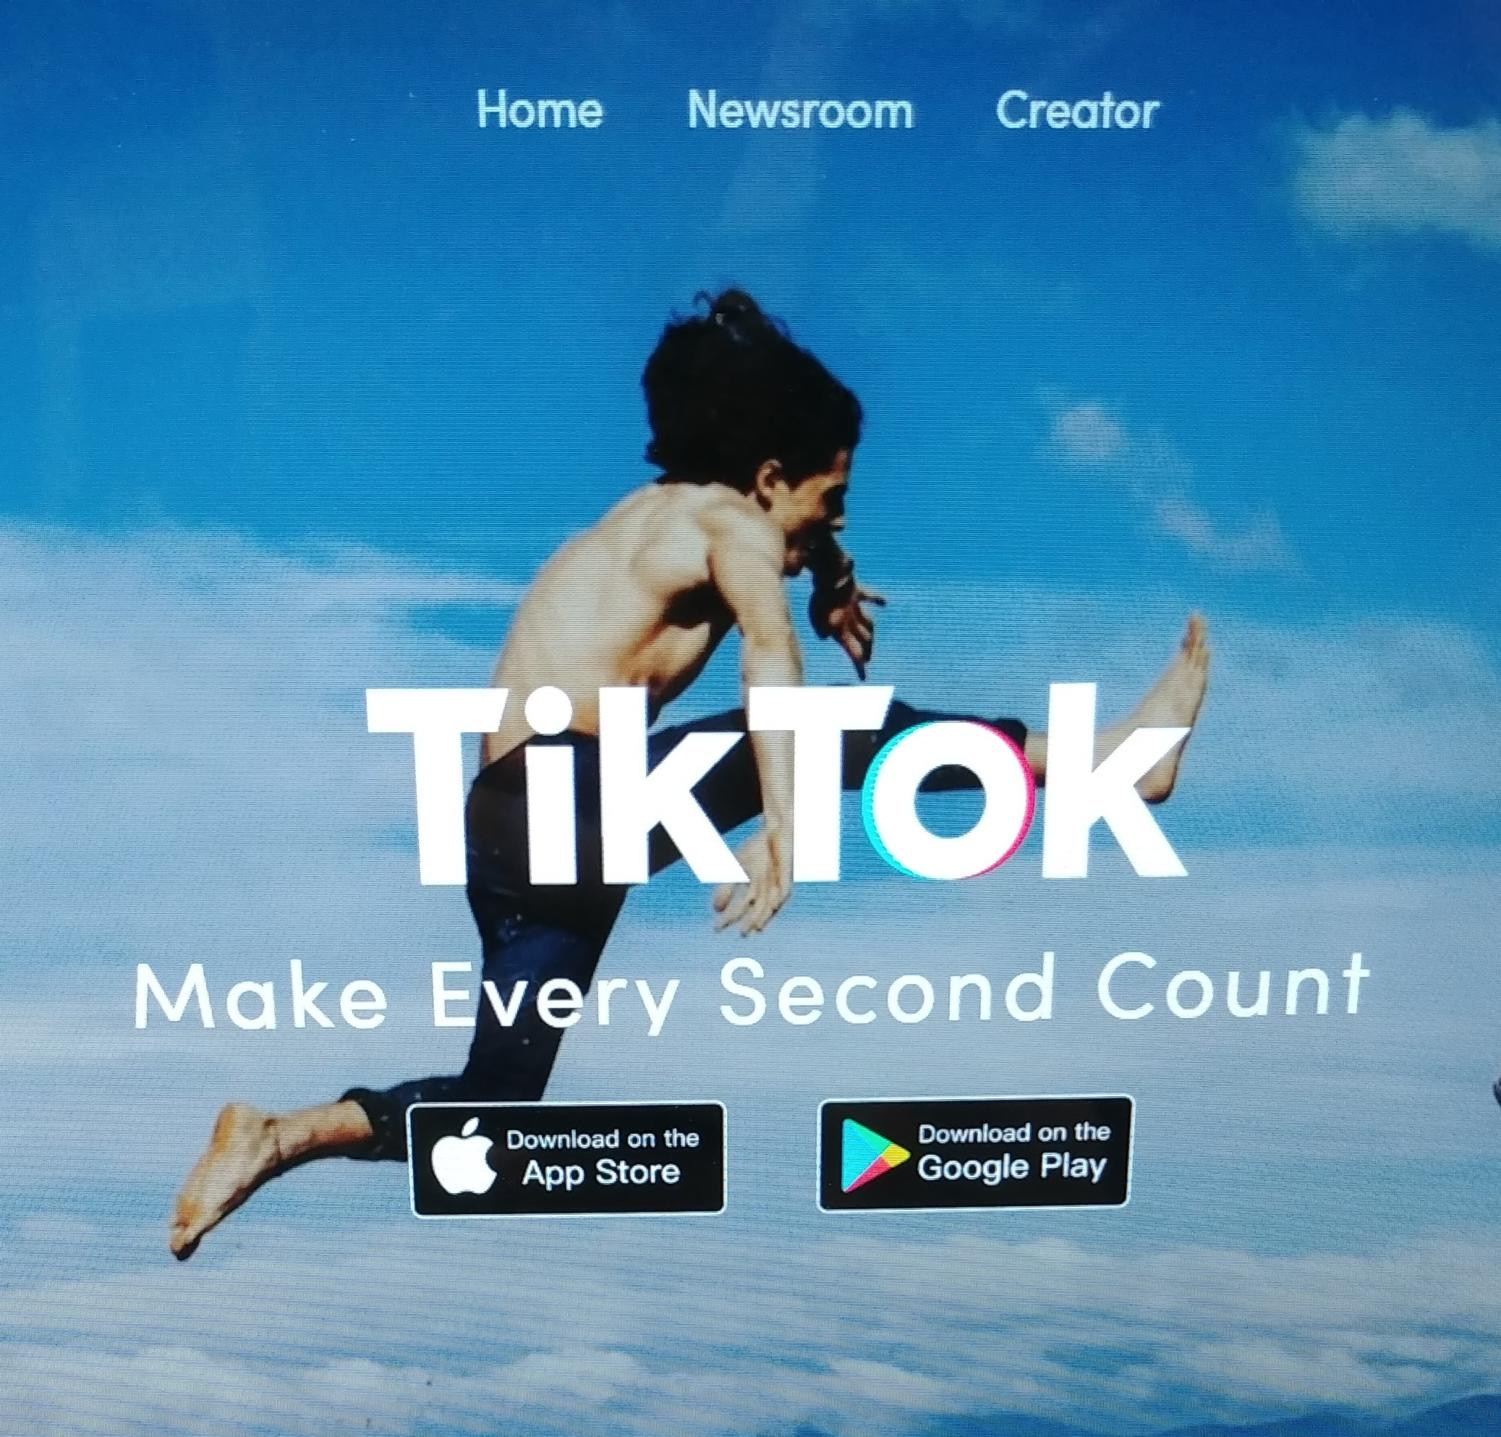 Tik Tok's main page displays their motto and ways to download the app.